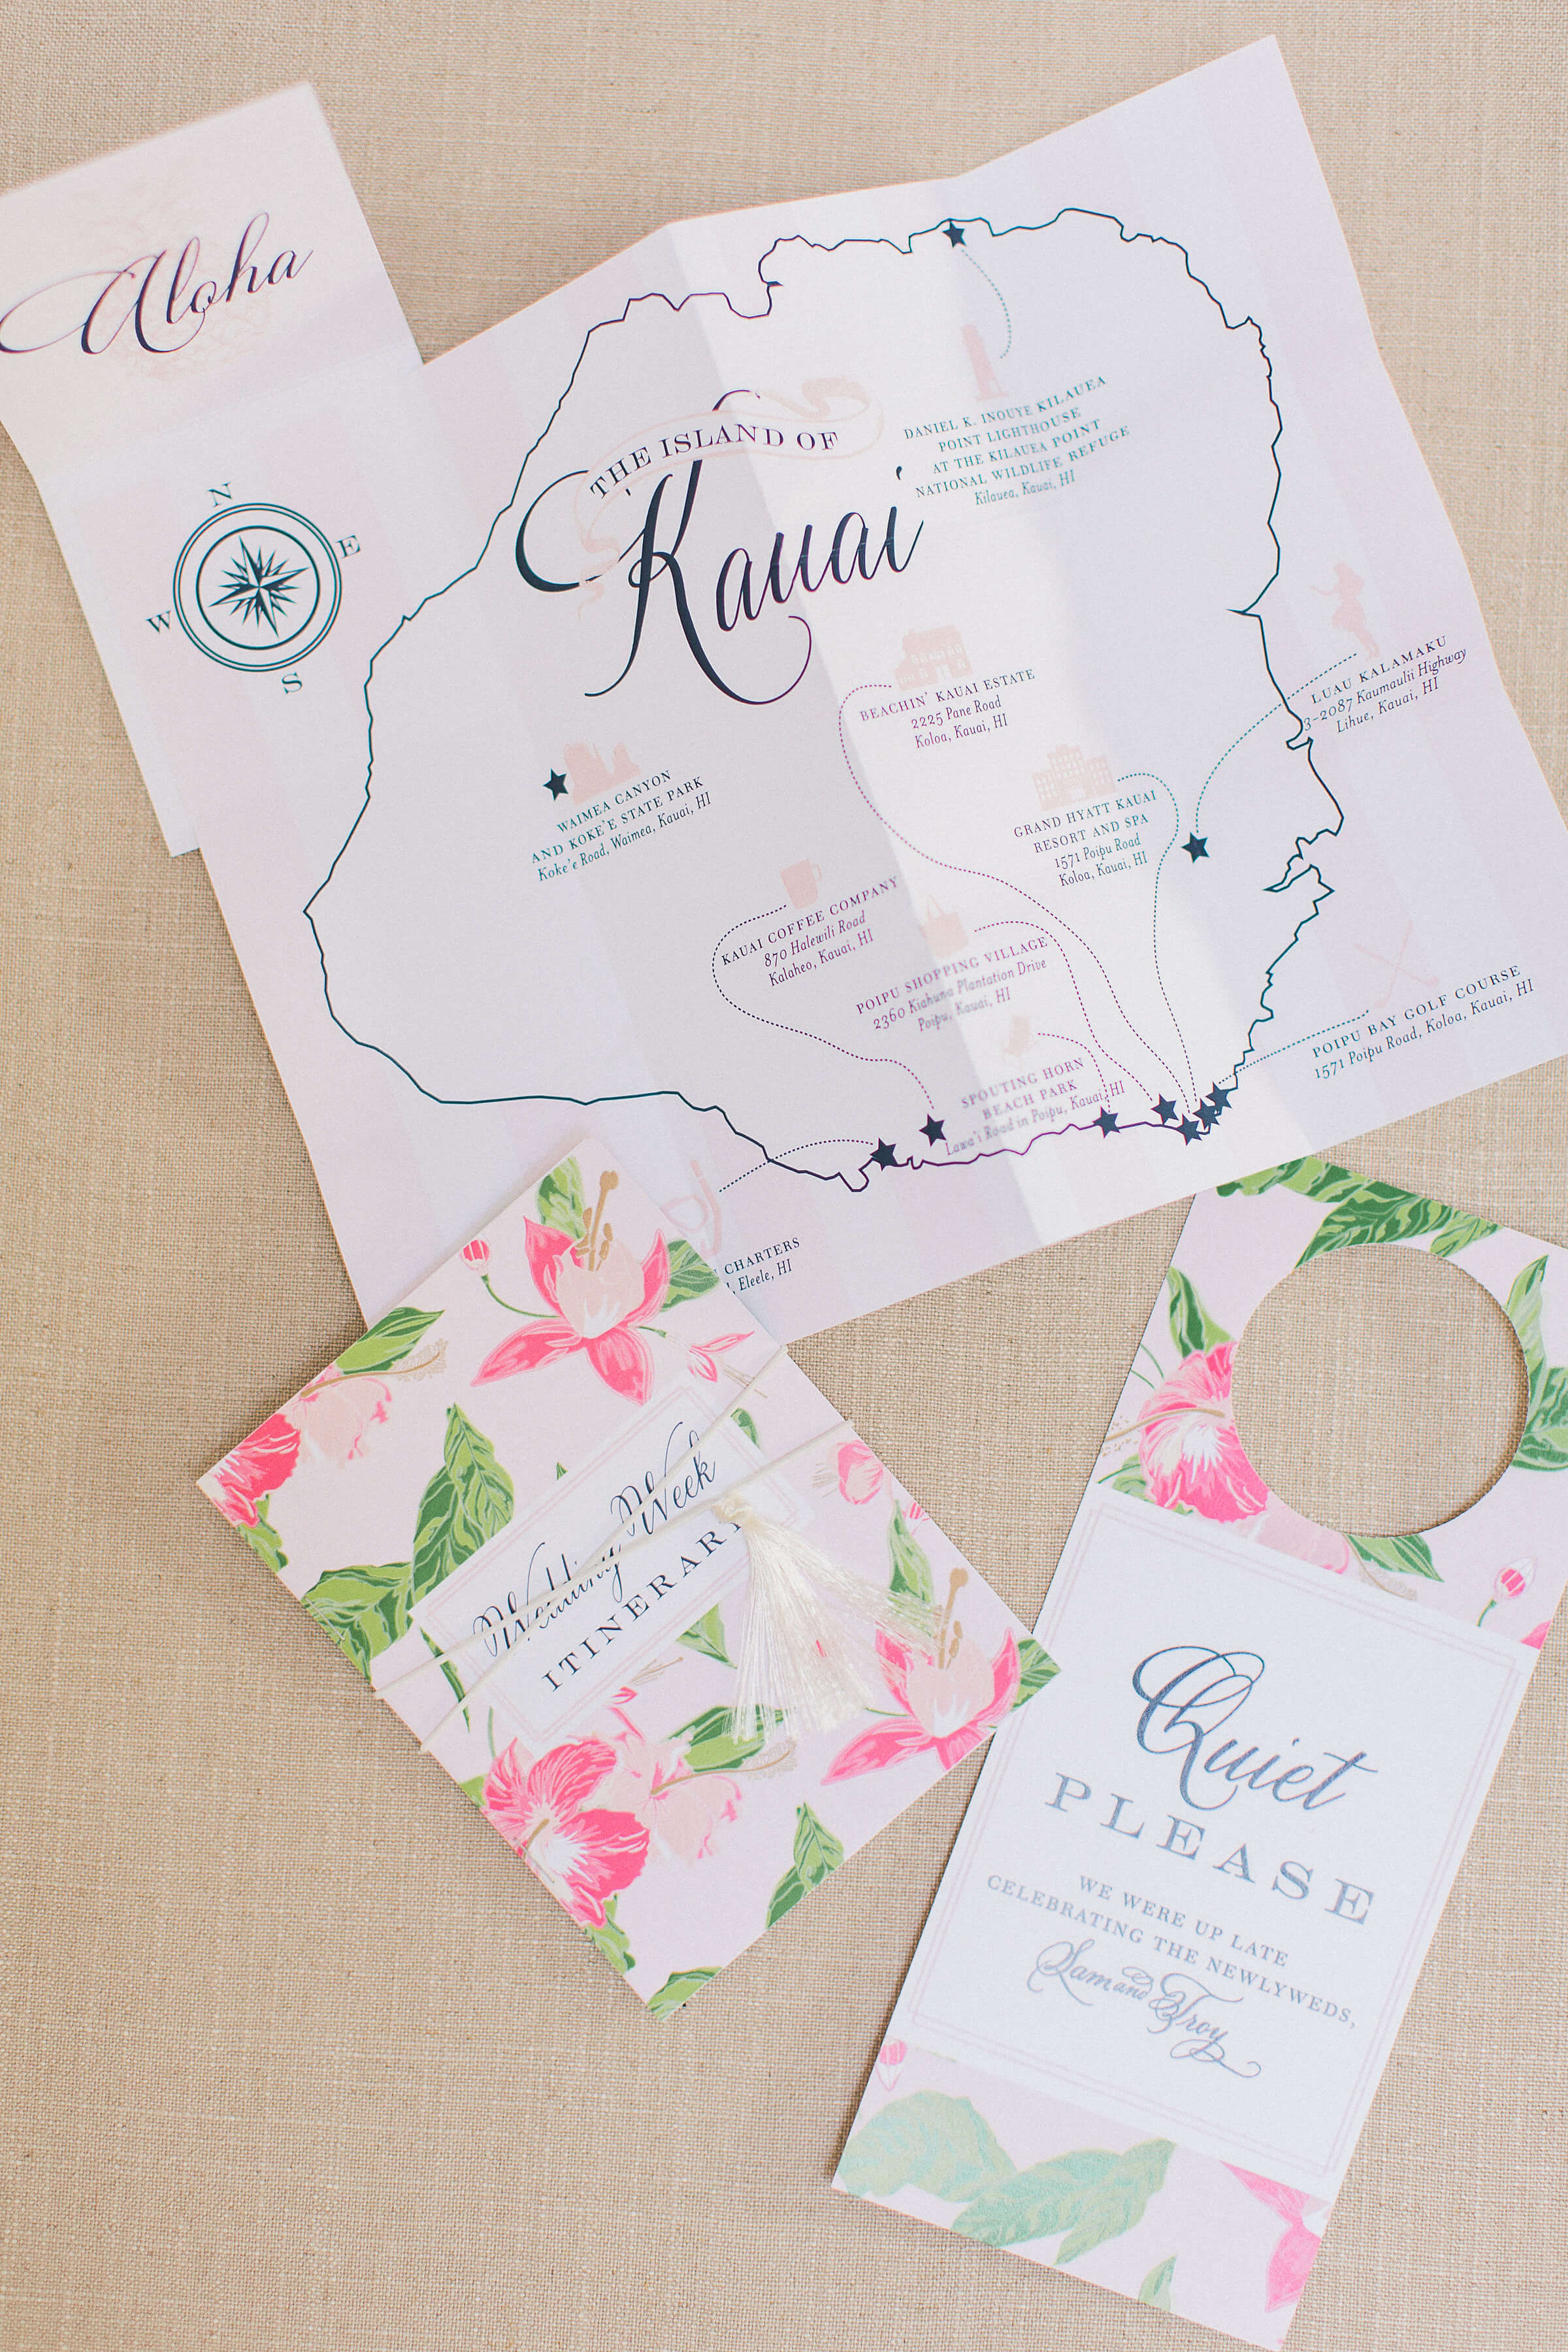 Hawaii Wedding Map of Kauai